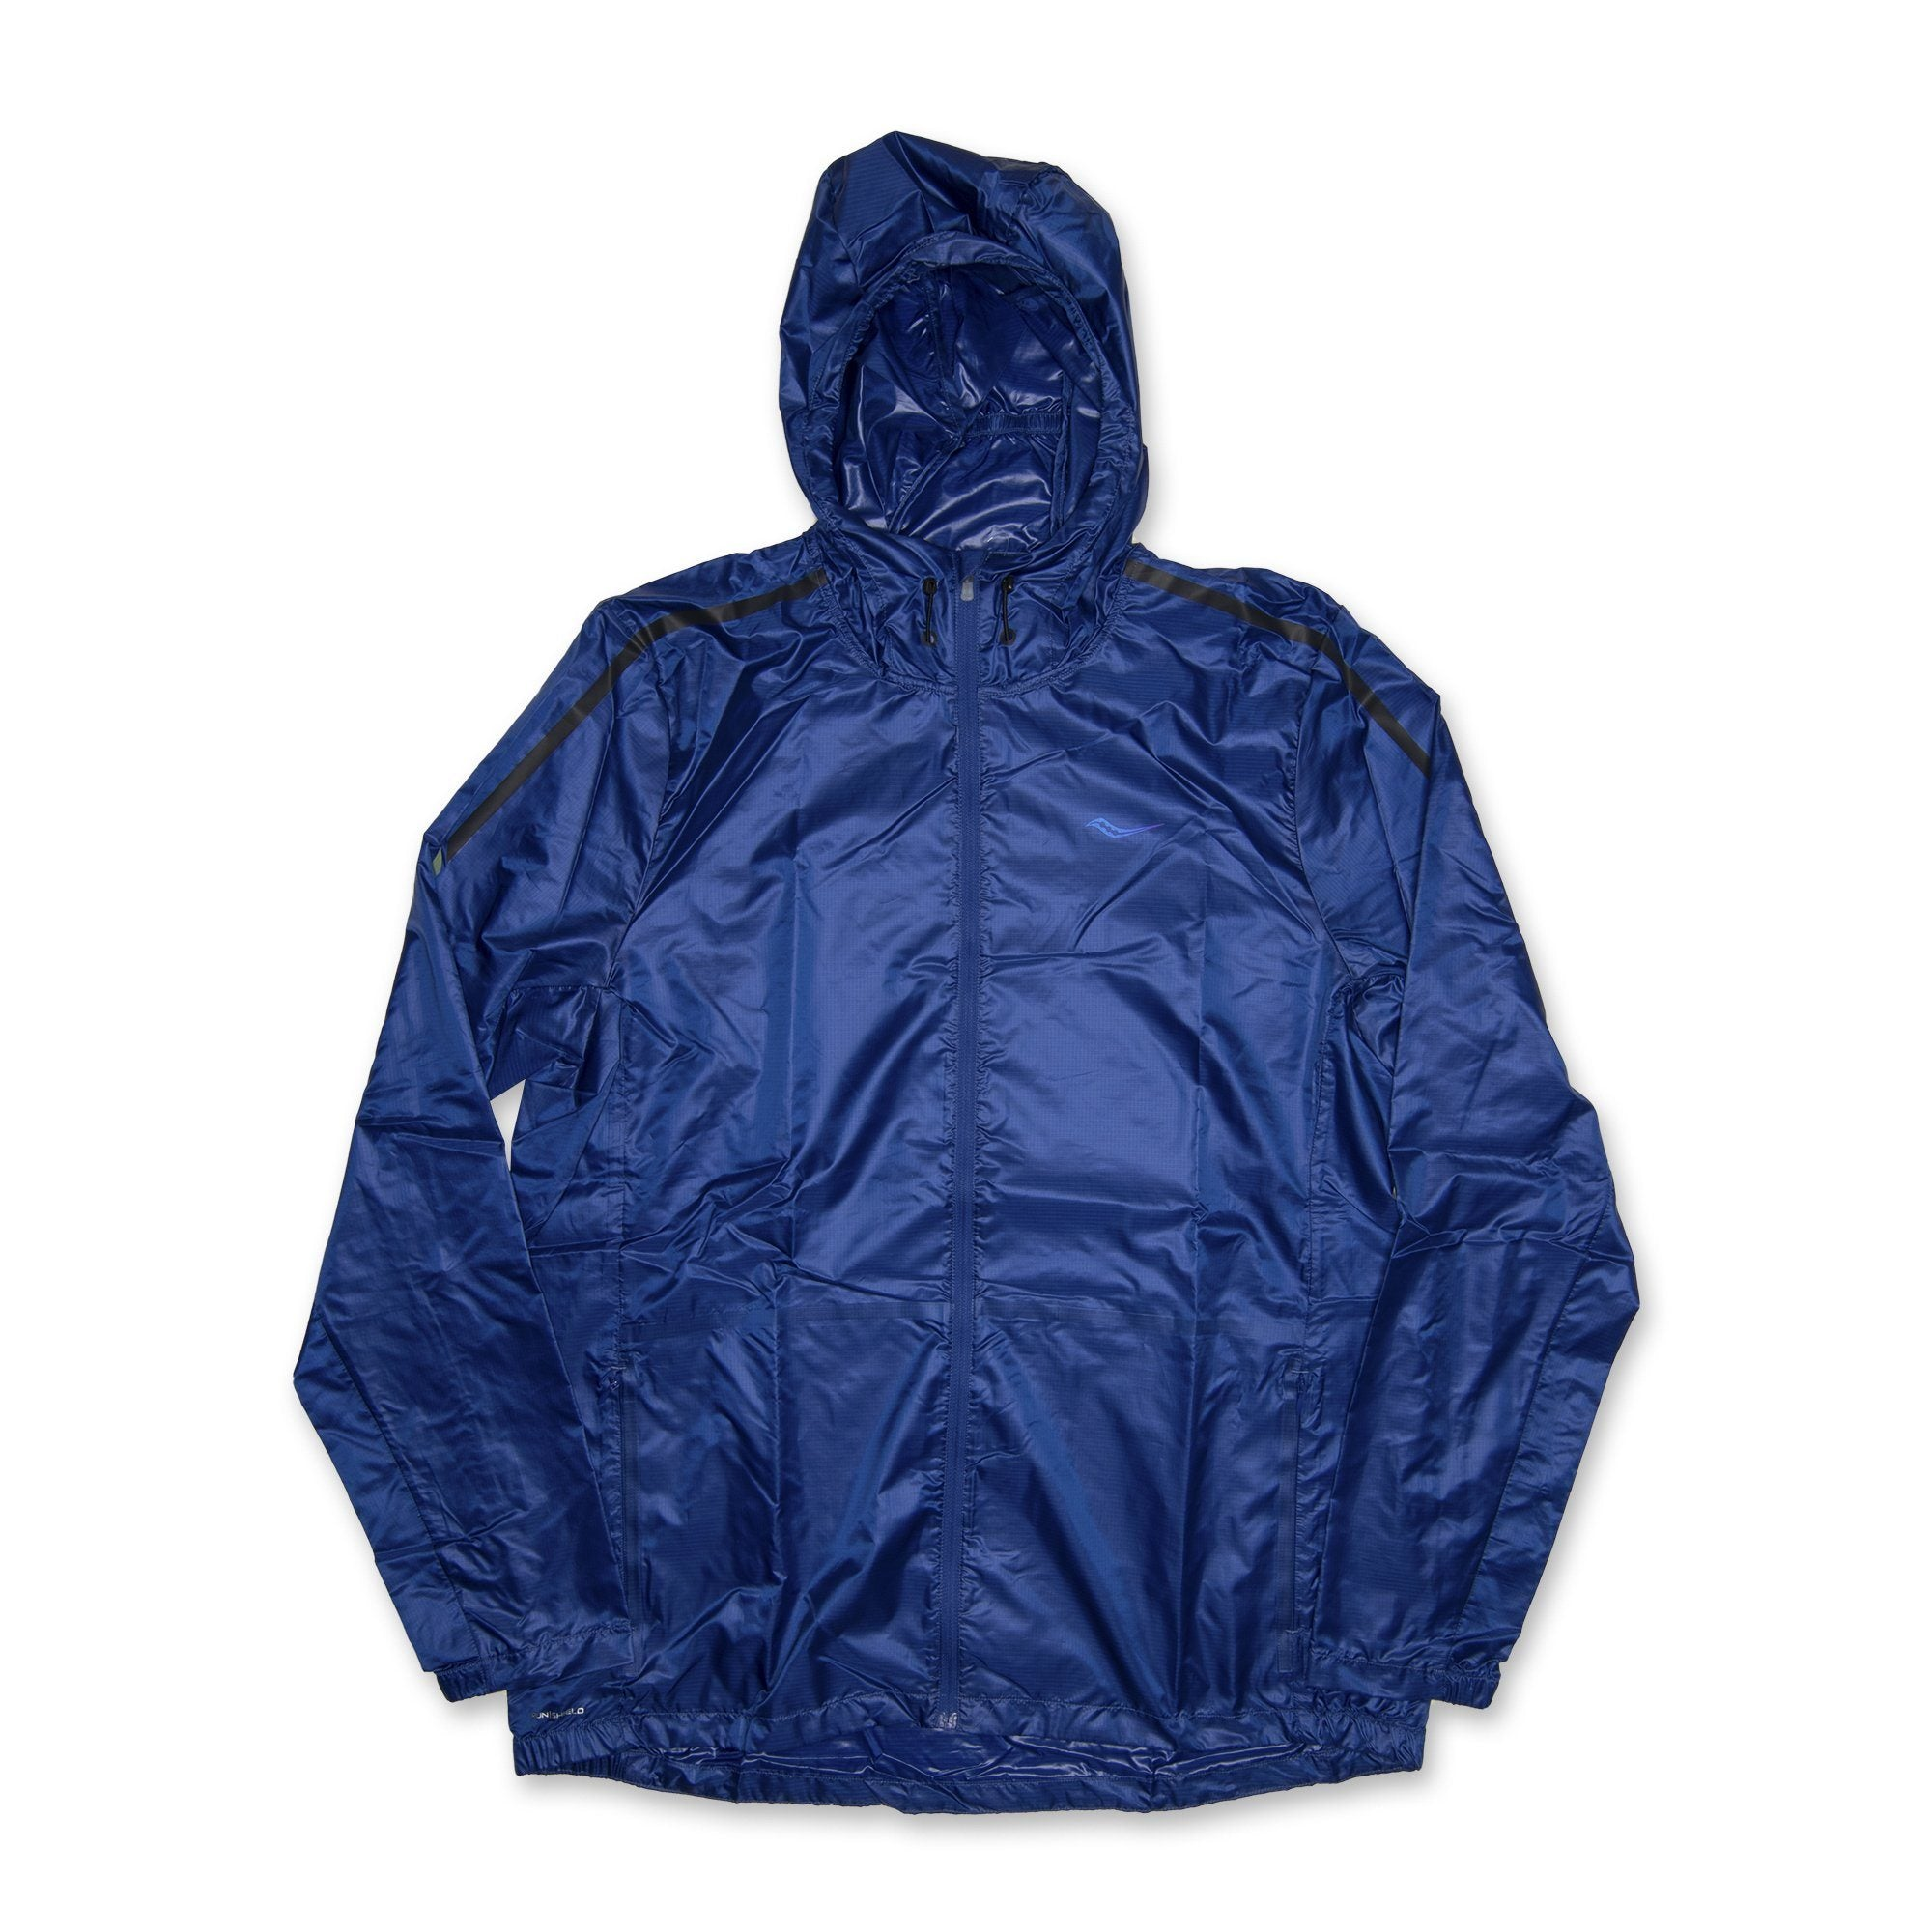 Saucony Mens Pack It Run Jacket - Blue SP-ApparelJacket-Men Saucony